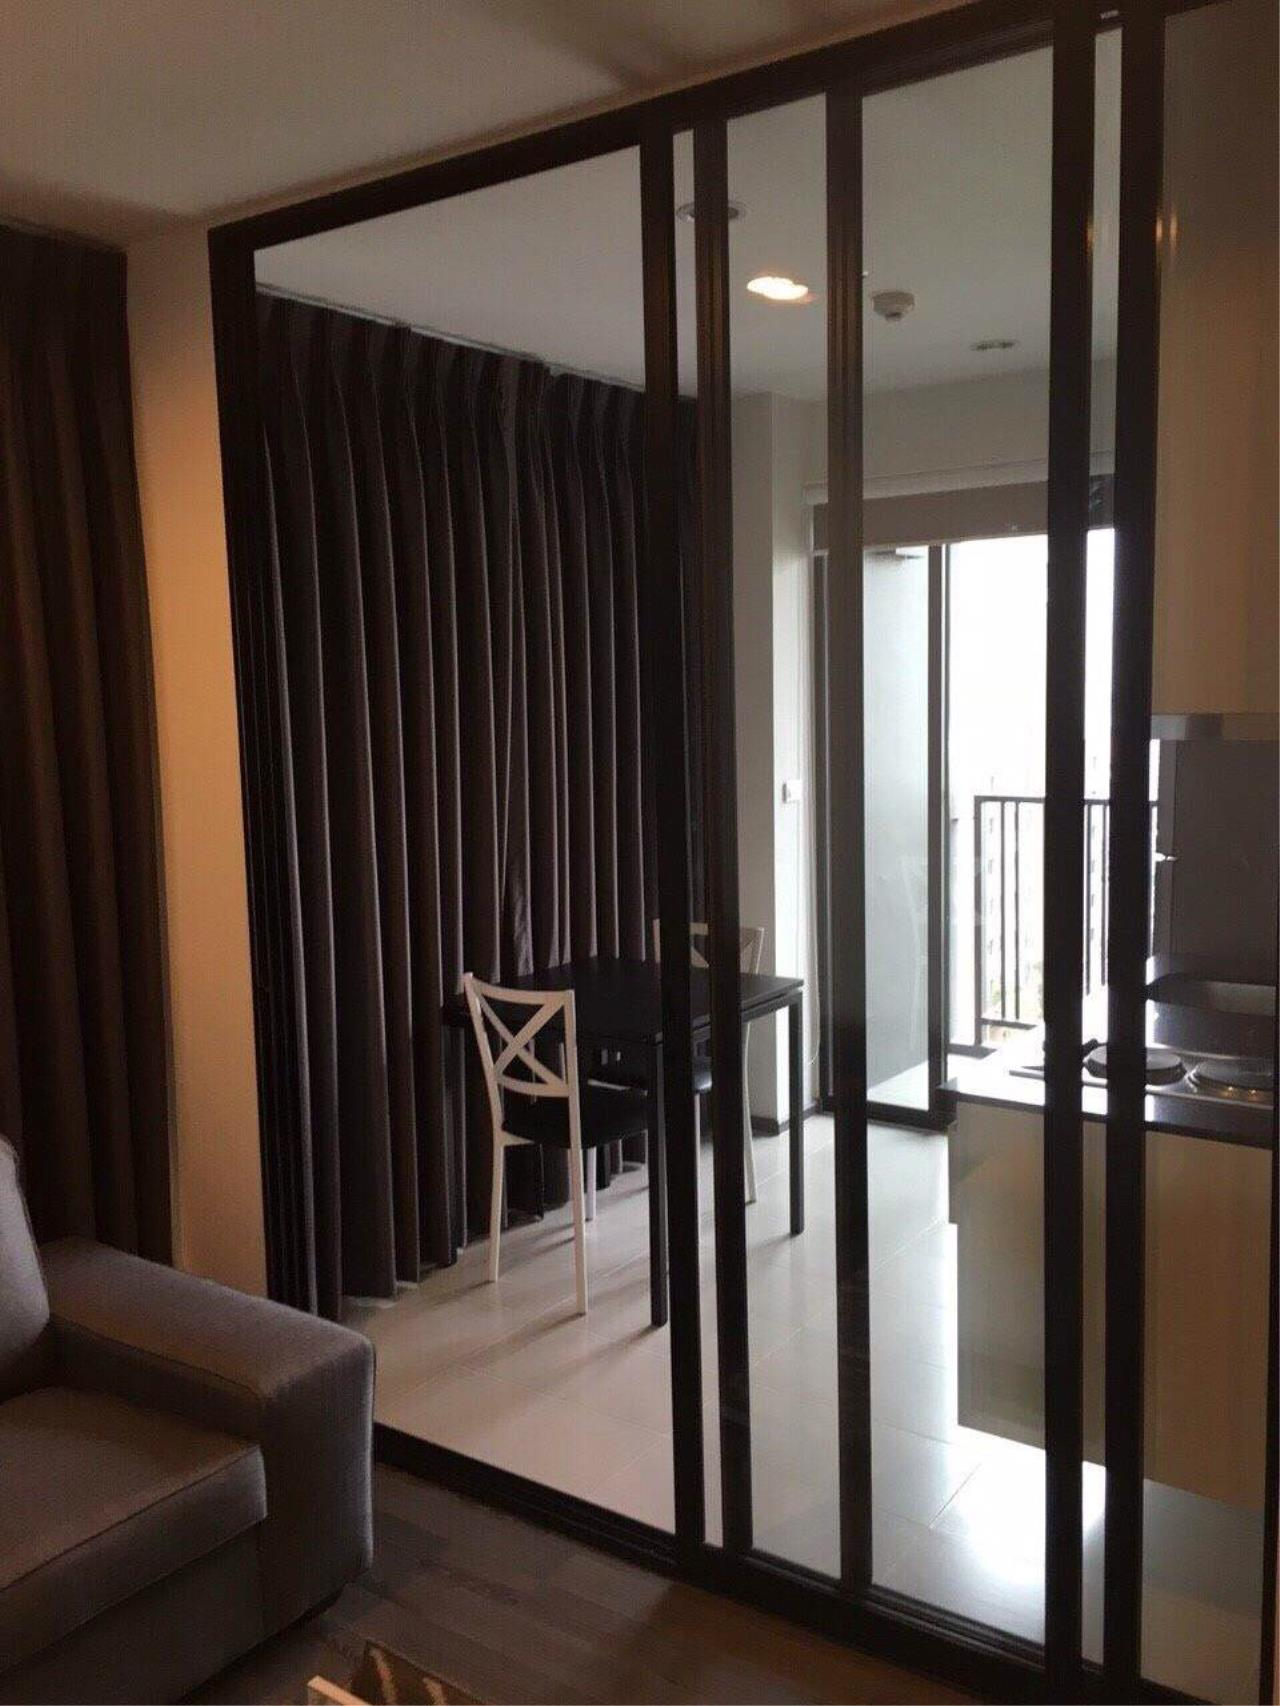 RE/MAX All Star Realty Agency's Basepark East One-Bed full furnished for rent 15,000 Baht neg (BTS On Nut) 3